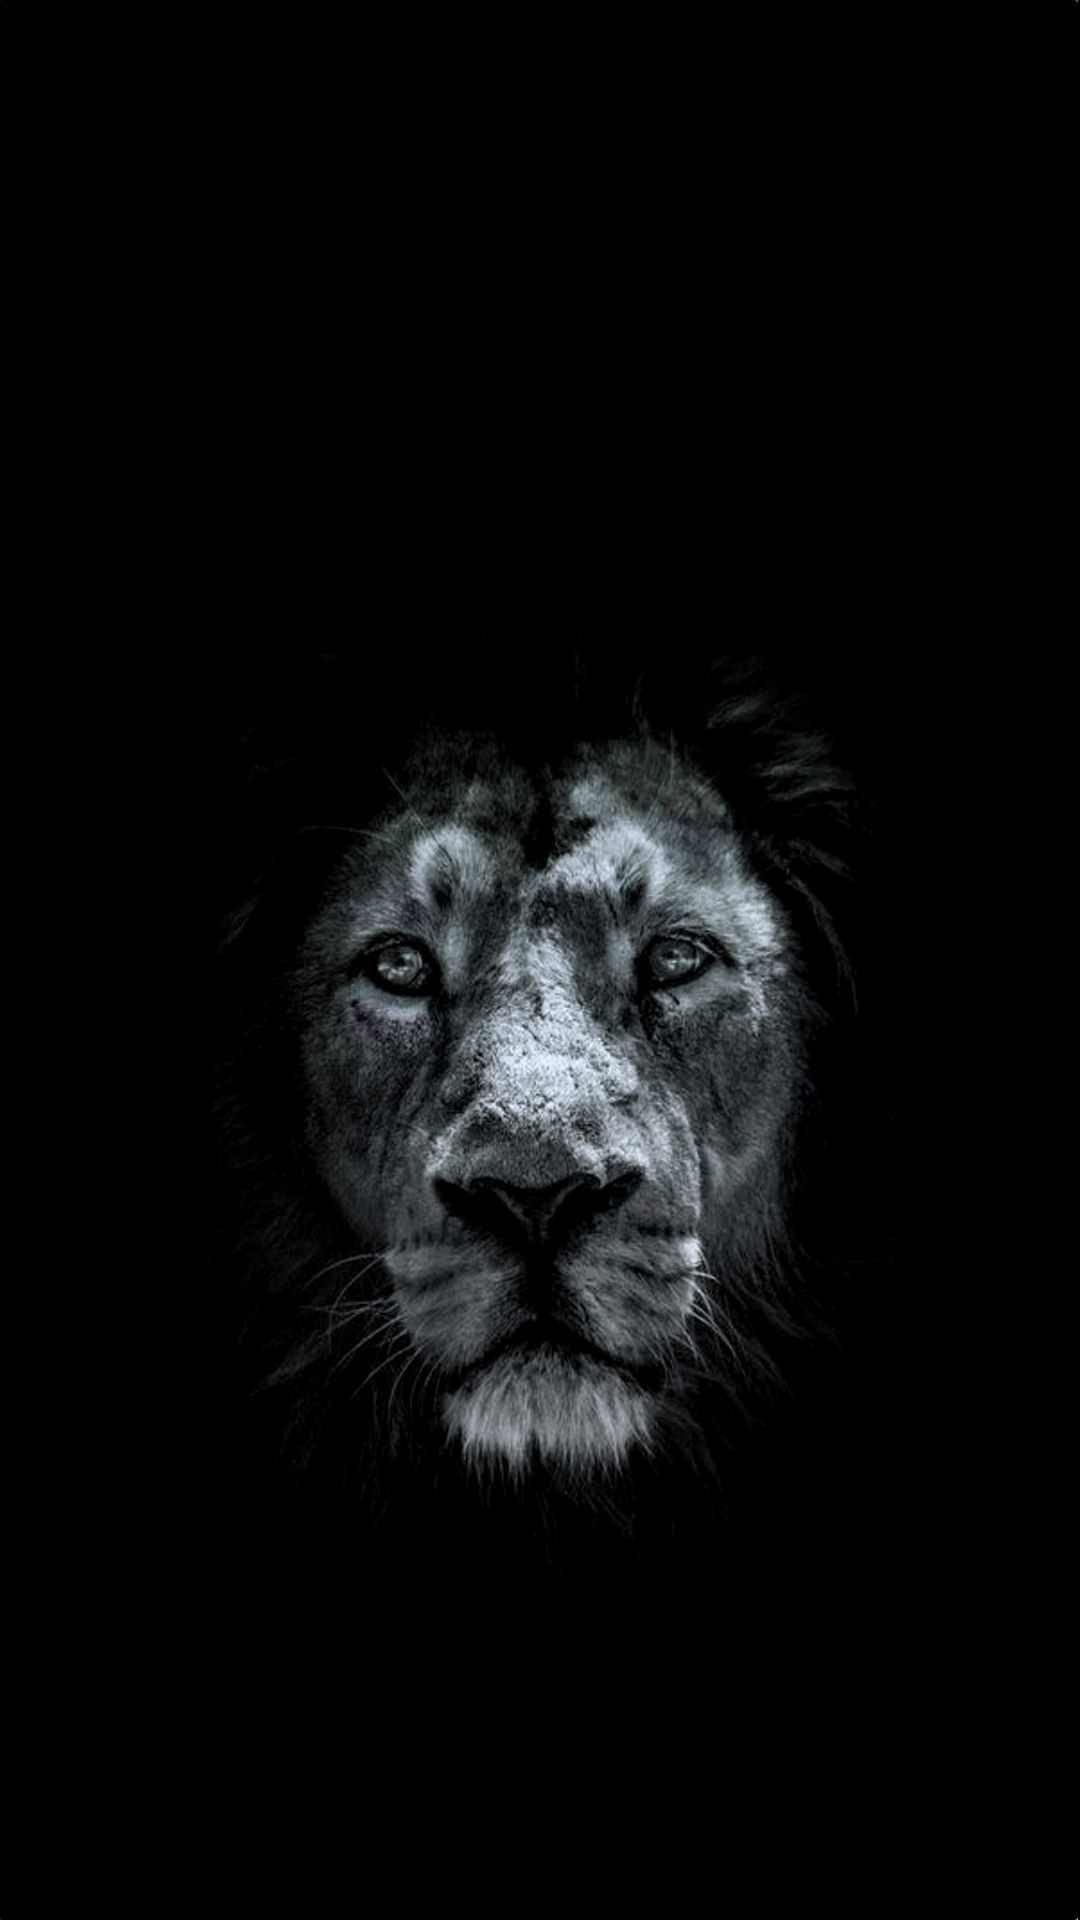 Black Lion Wallpapers Images Hupages Download Iphone Wallpapers Lion Hd Wallpaper Lion Wallpaper Iphone Lion Wallpaper